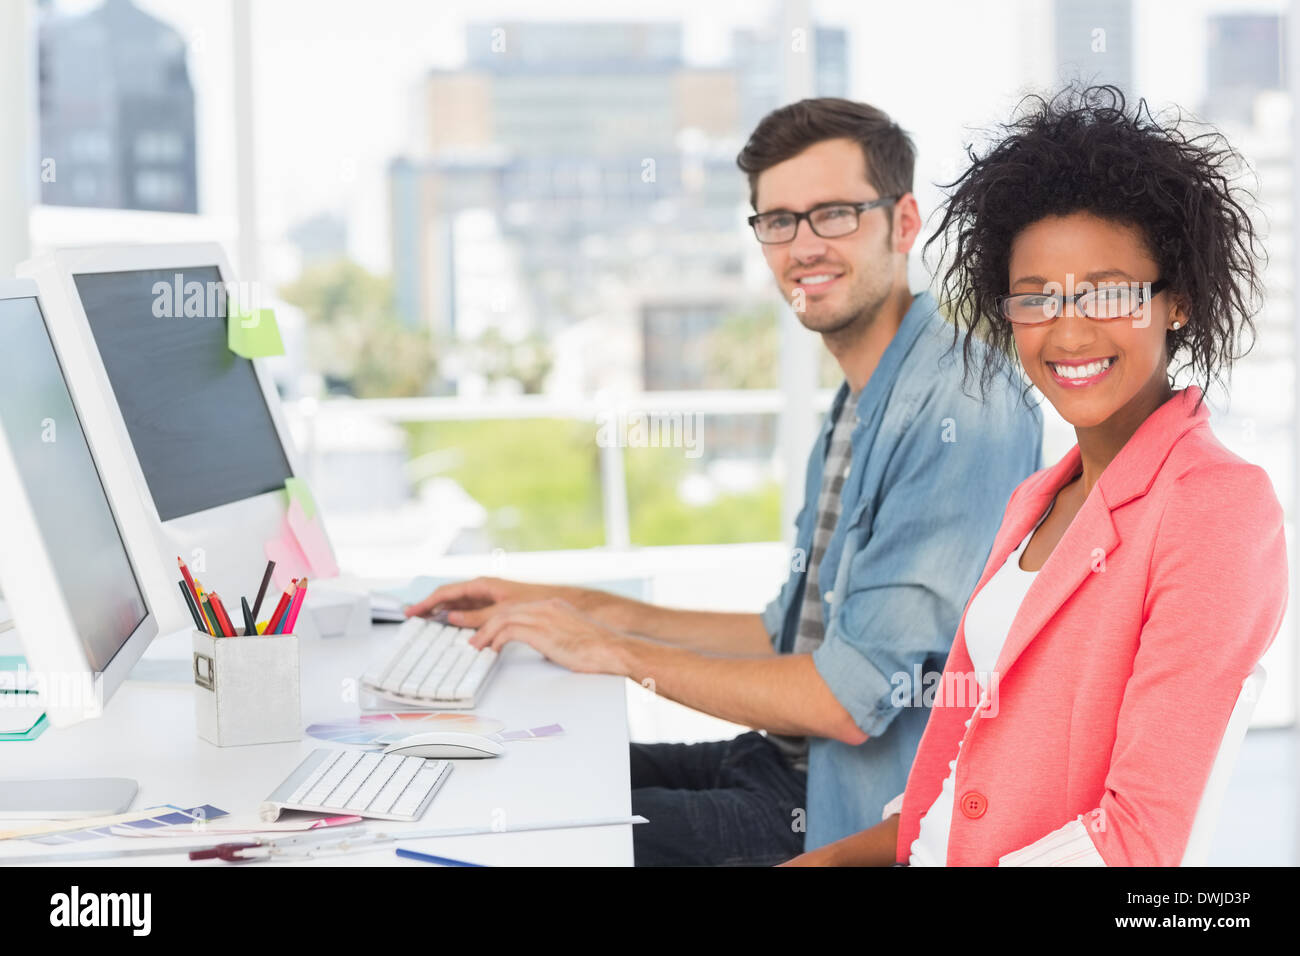 Smiling casual young couple working on computers - Stock Image